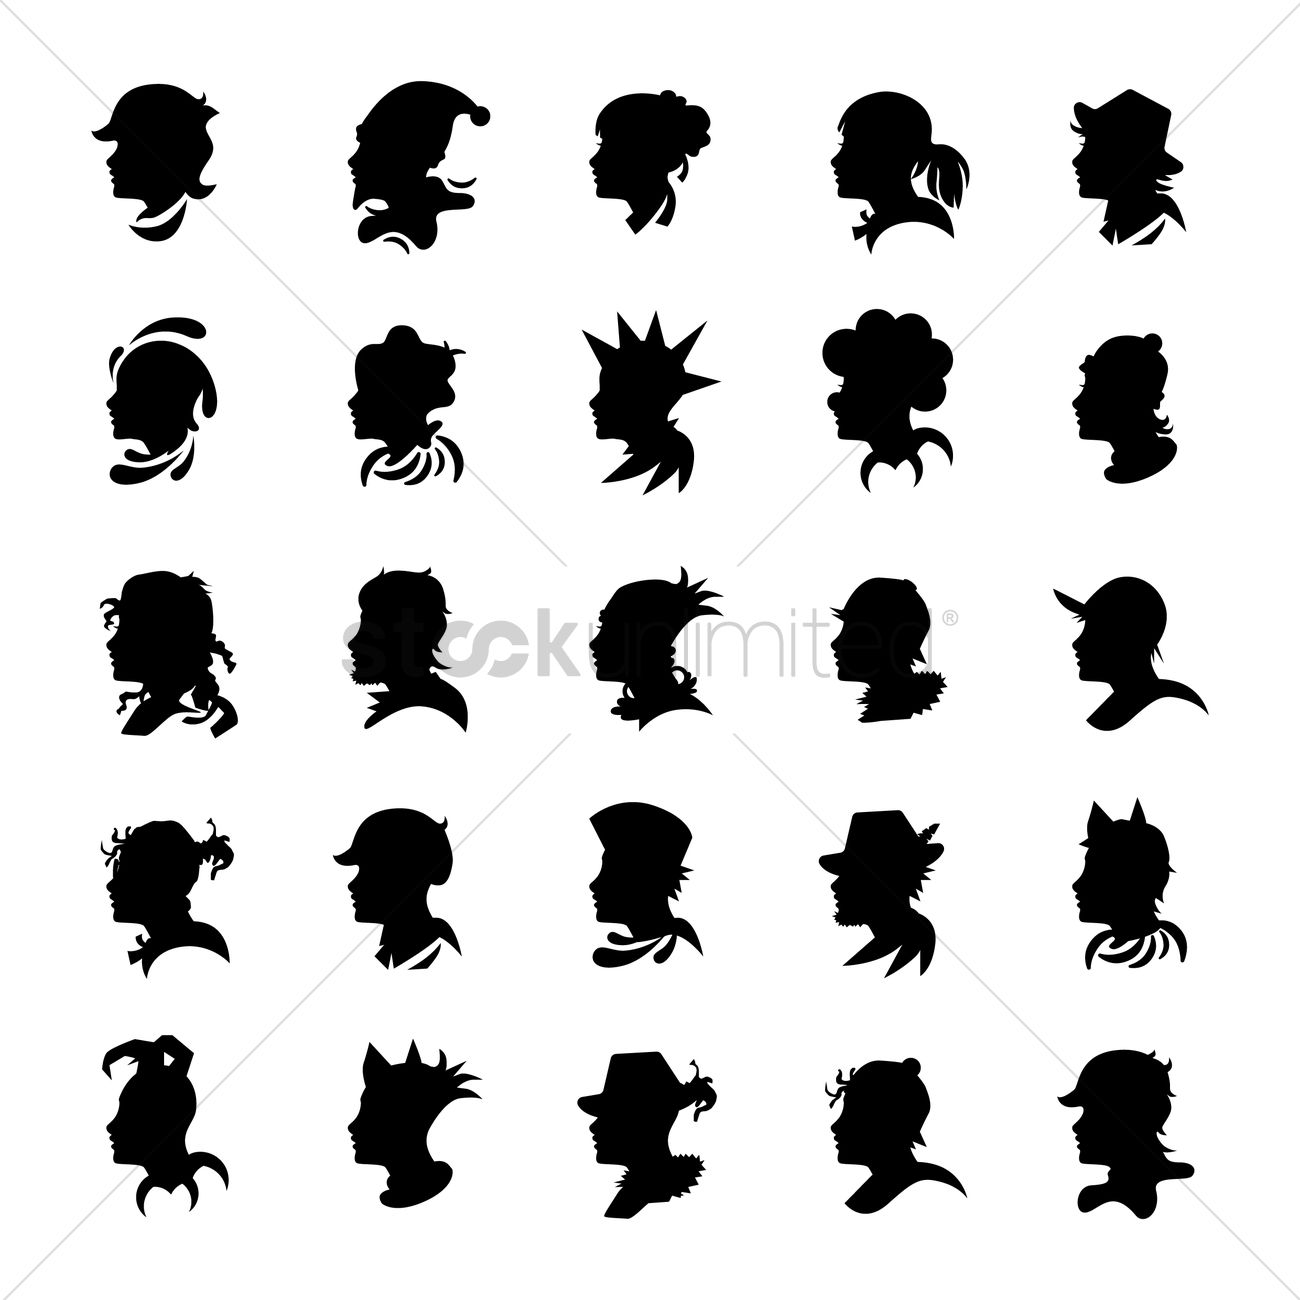 Collection Of Human Face Silhouette Vector Image 1438570 Stockunlimited